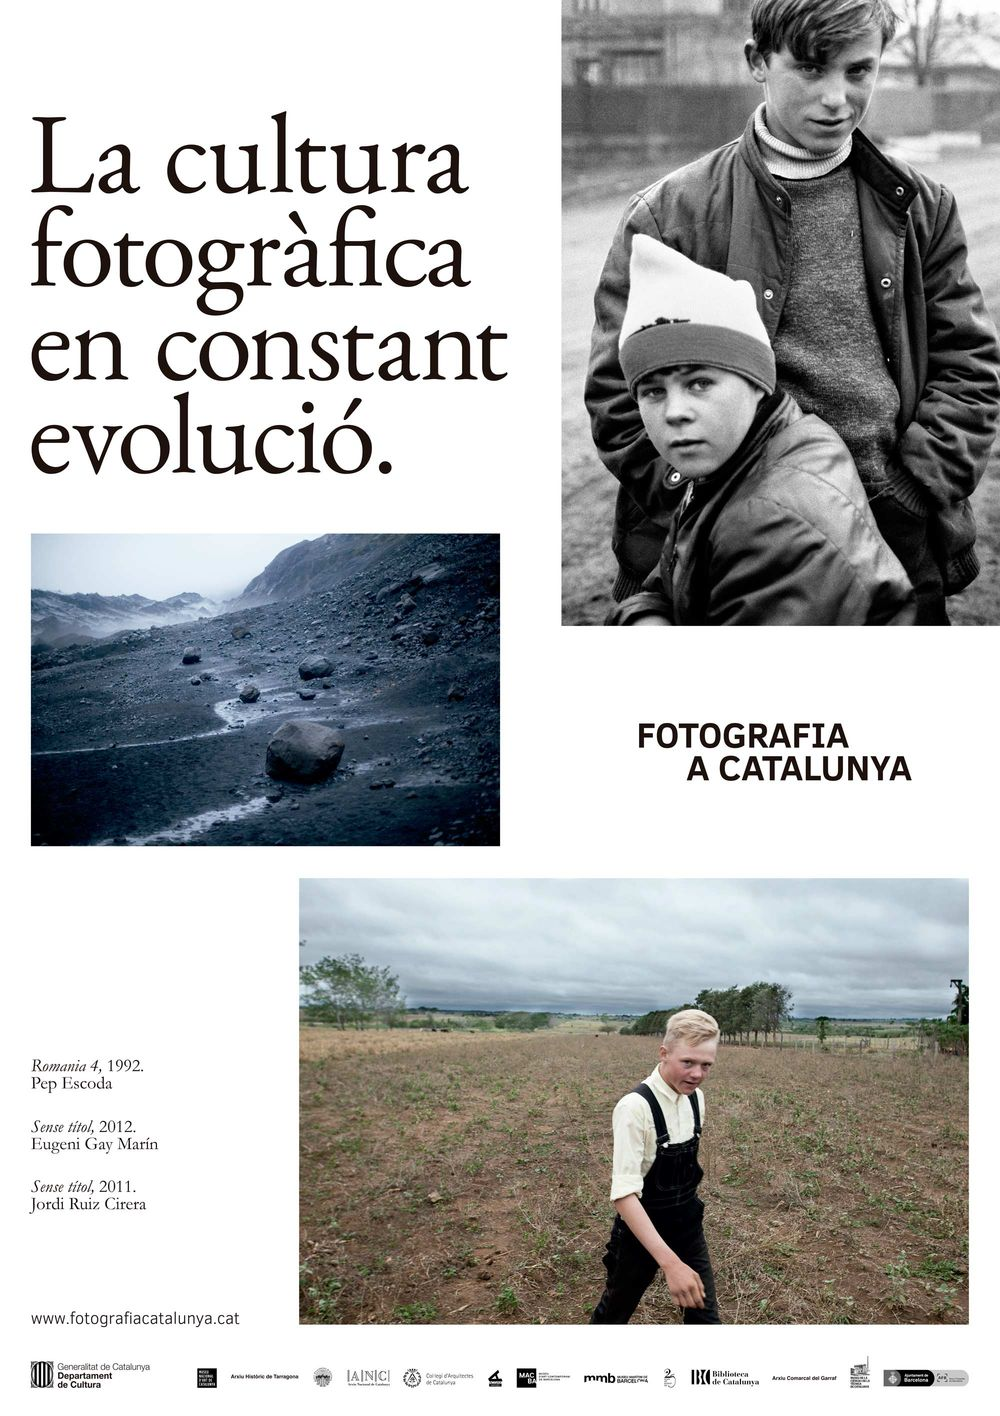 Fotografia a Catalunya (art direction, graphic design, art & culture, public sector, website), by DOMO-A | Art direction & graphic design, Barcelona